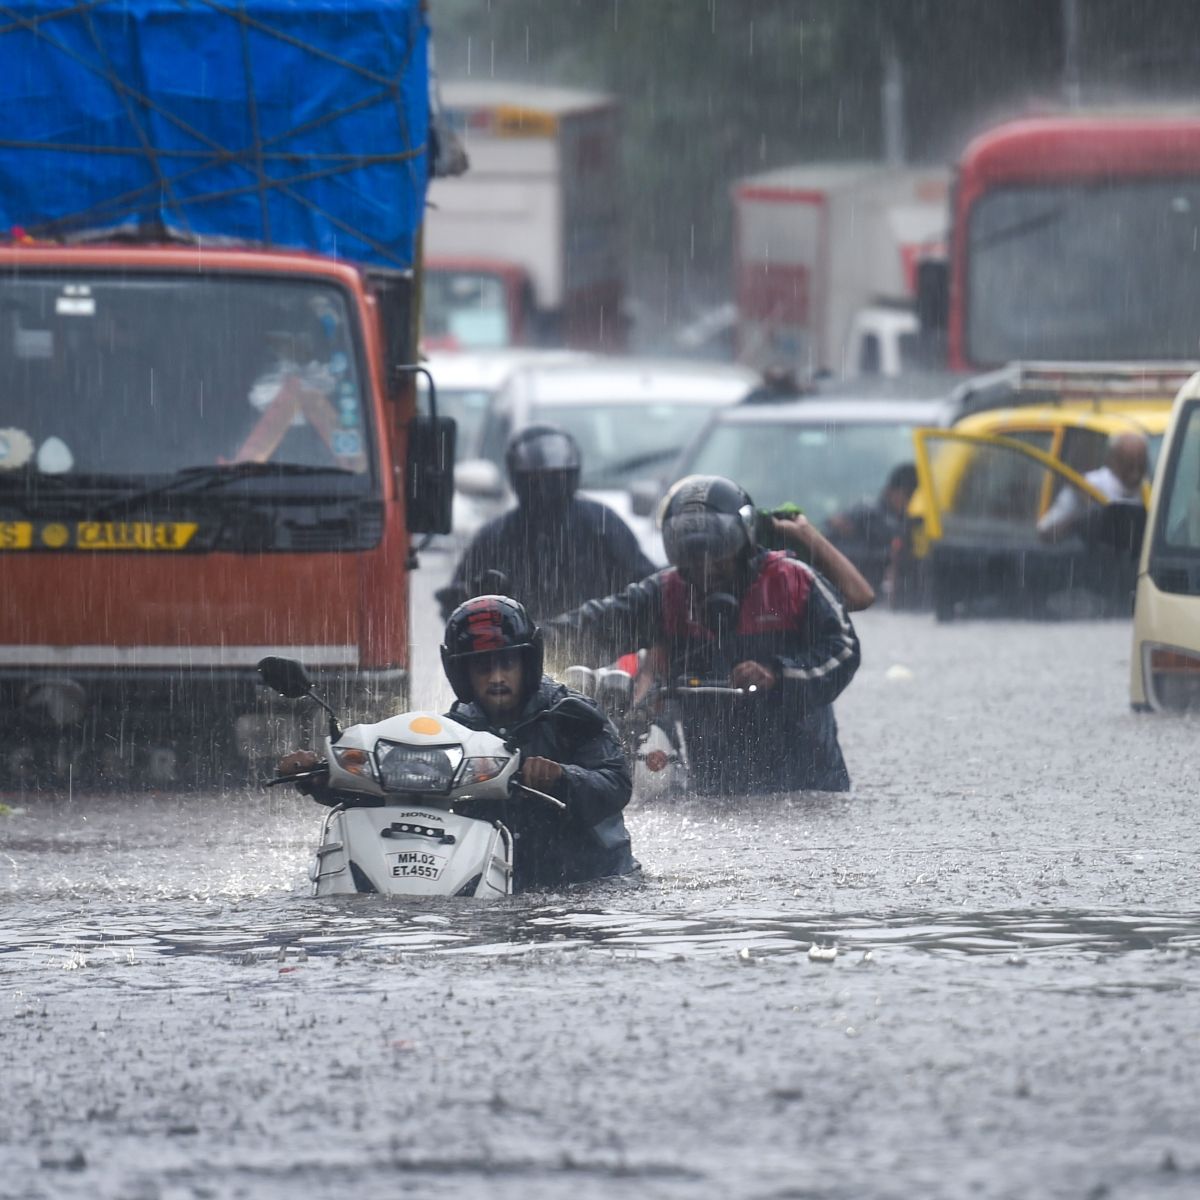 Mumbai weather updates: IMD issues weather warnings, says heavy rainfall likely till June 12